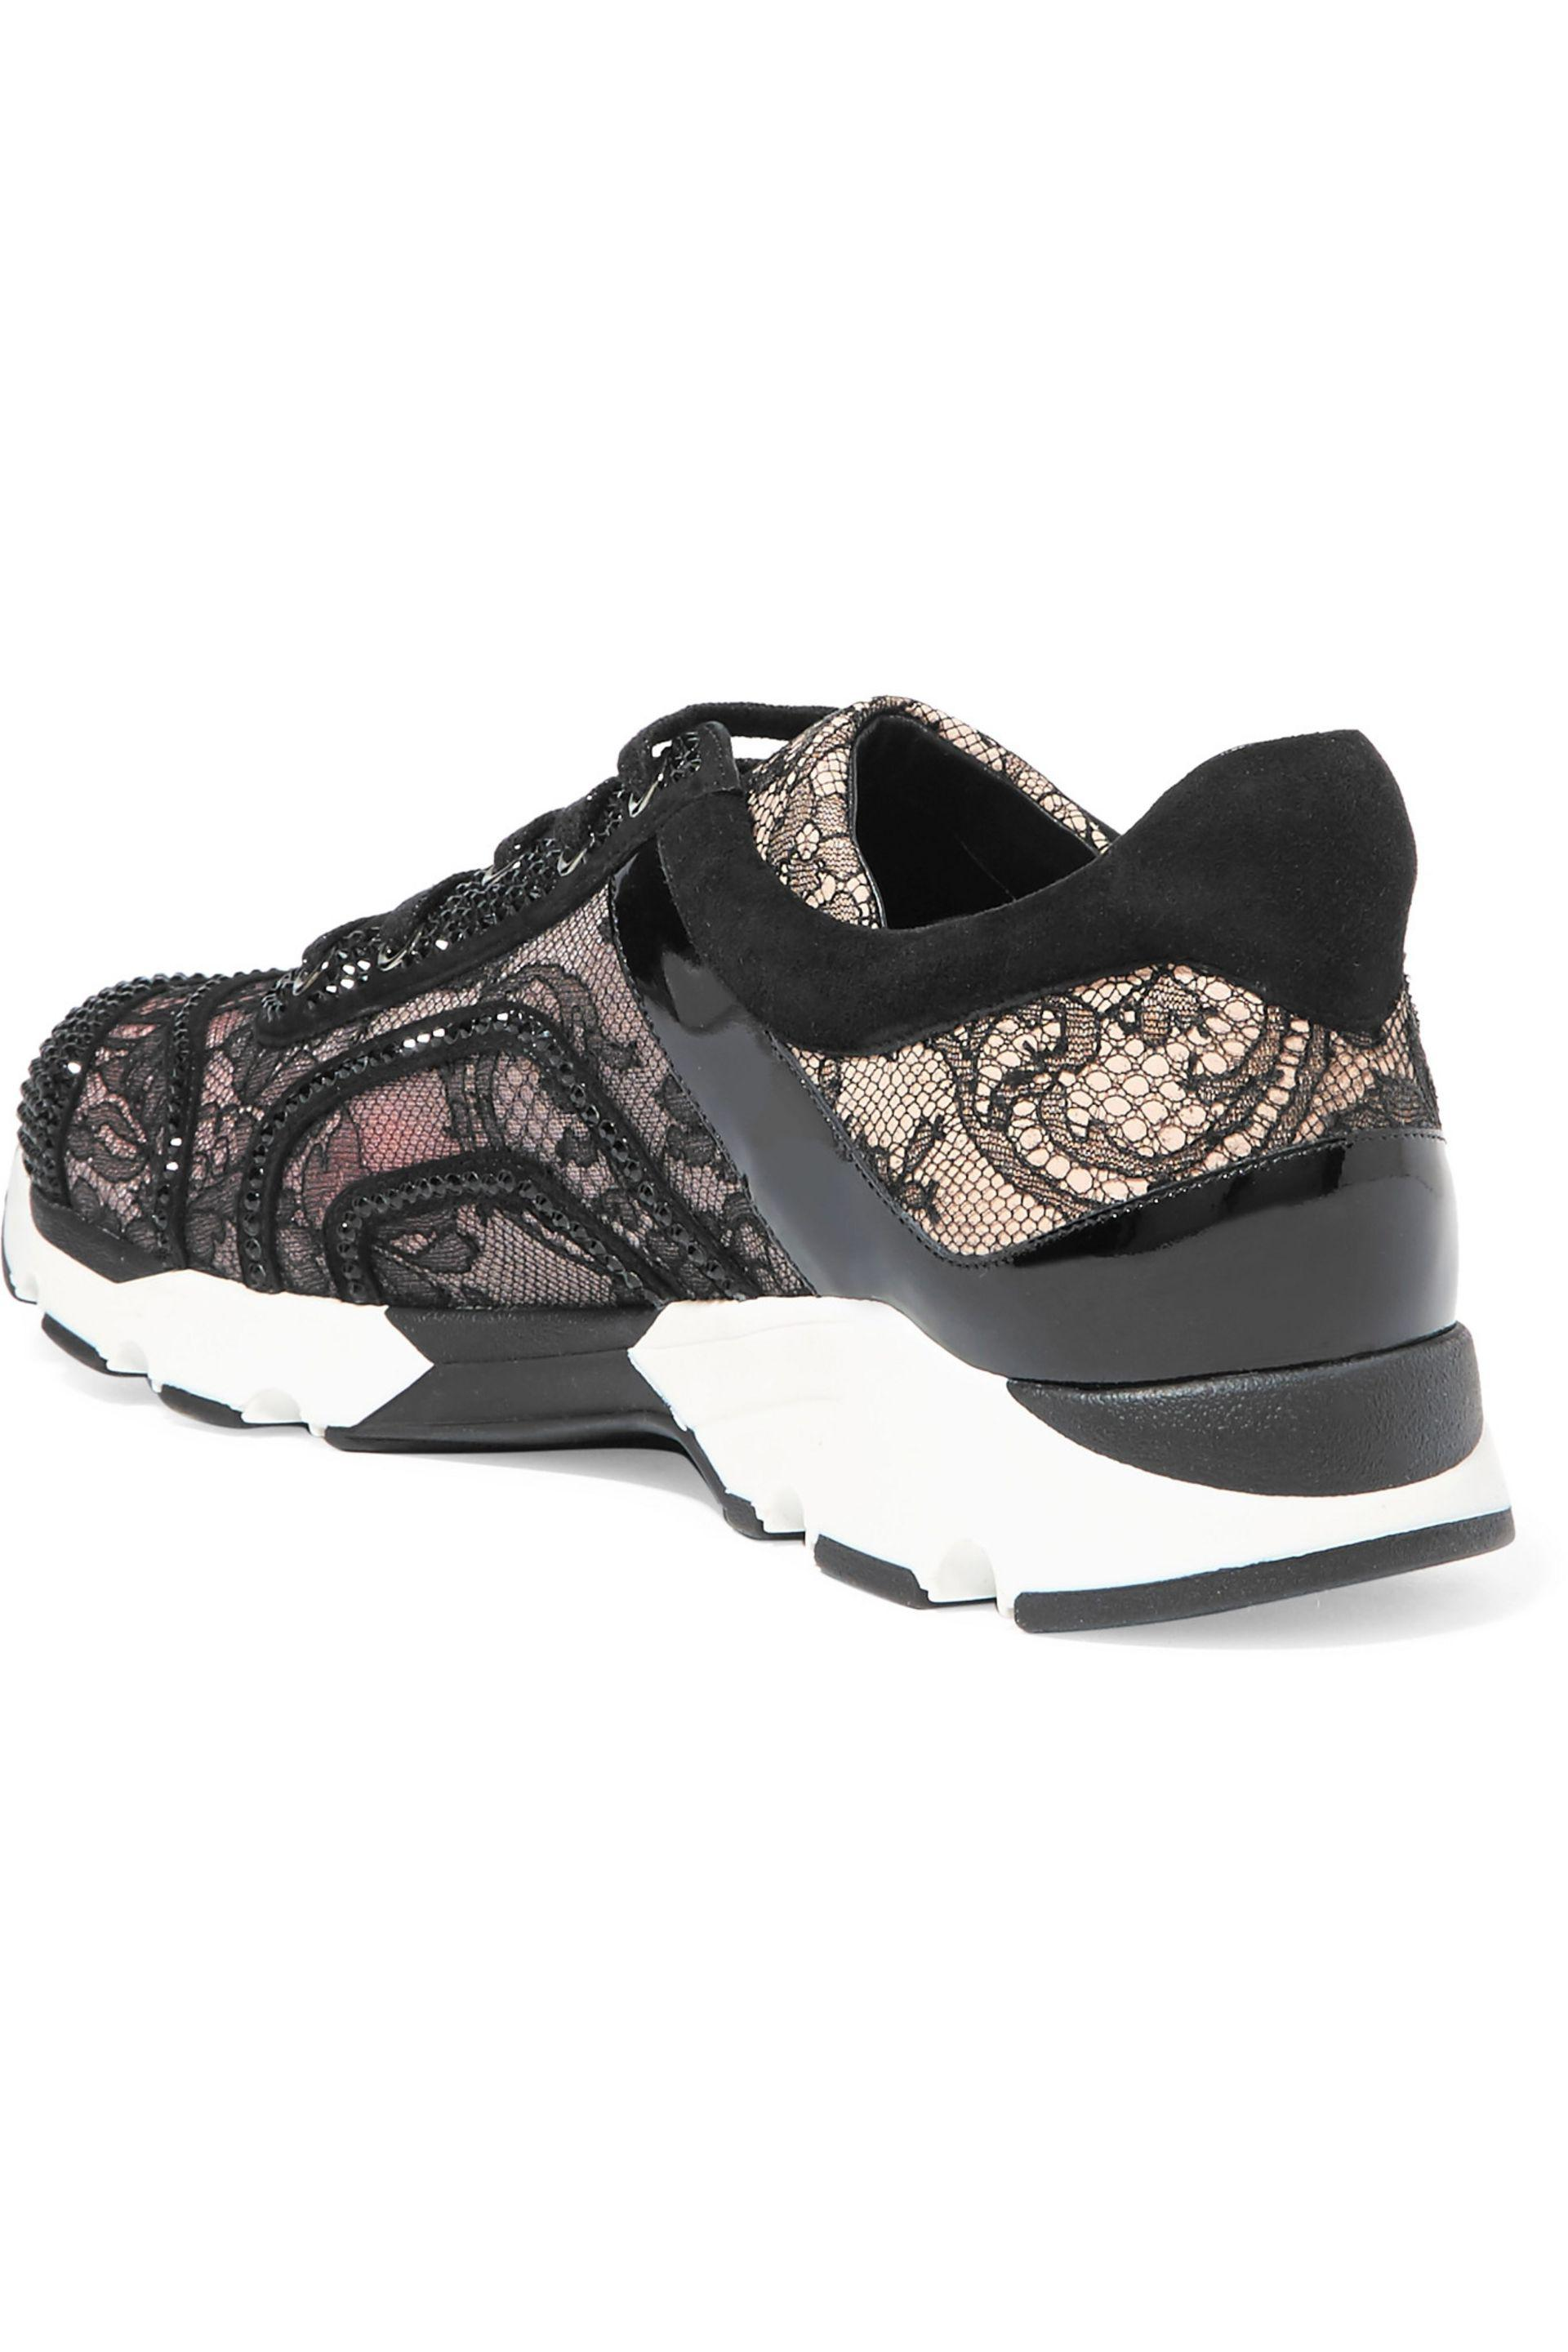 Rene Caovilla Patent Leather-paneled Embellished Lace And Suede Sneakers in Black